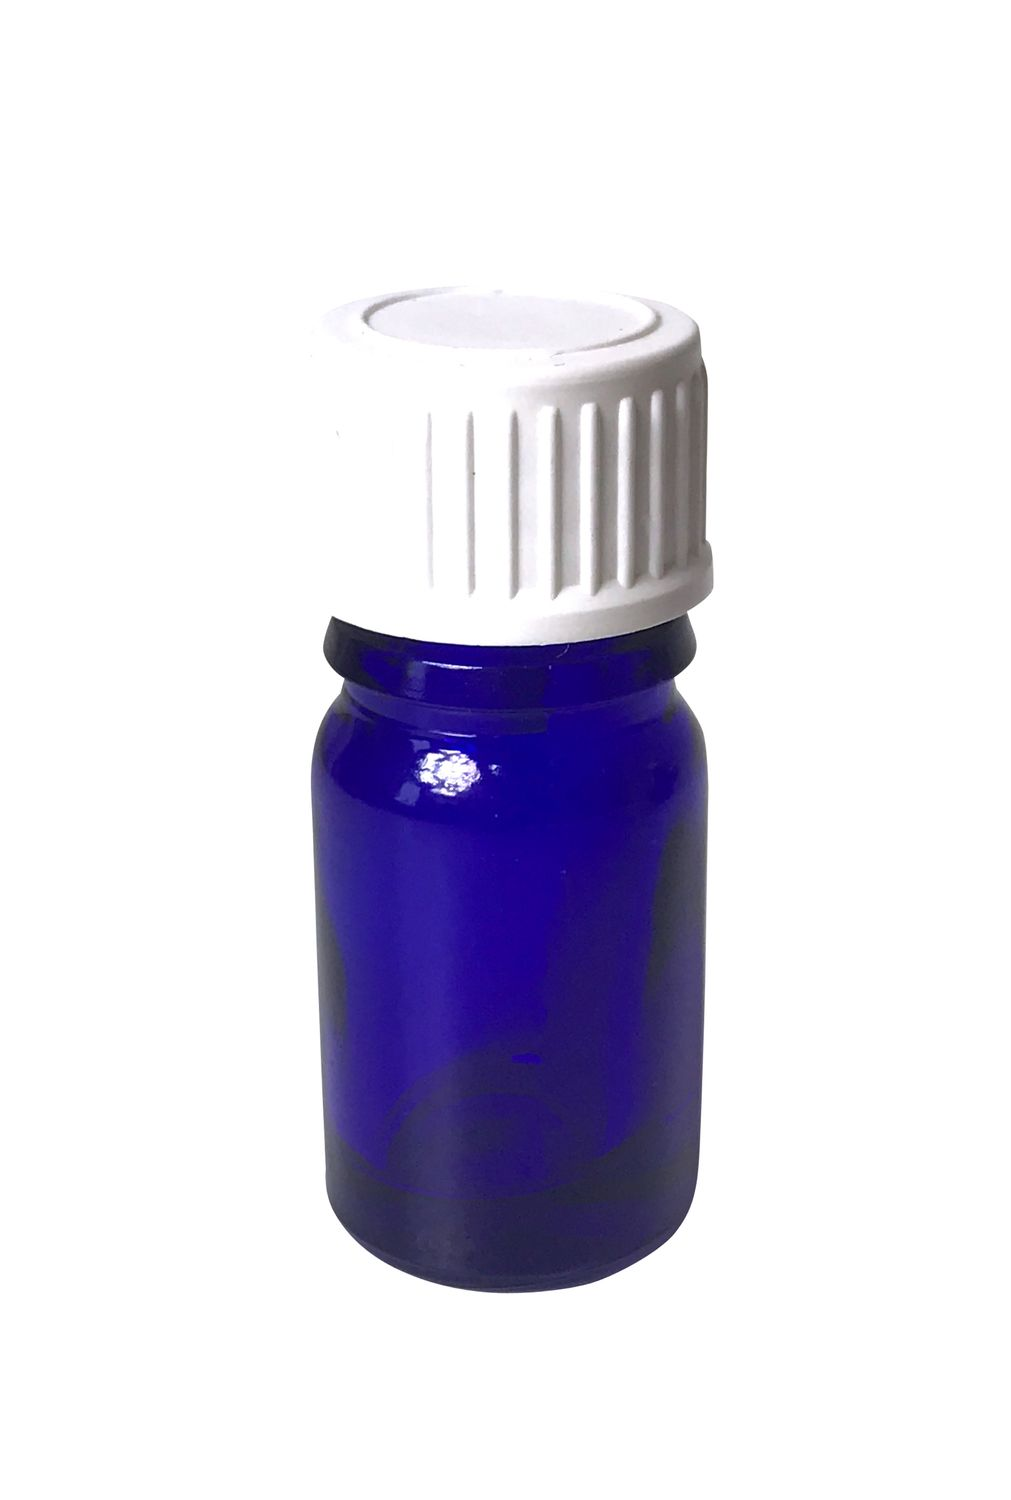 Cobalt Blue Bottle 5 ml with DIN 18 Thread & Lid